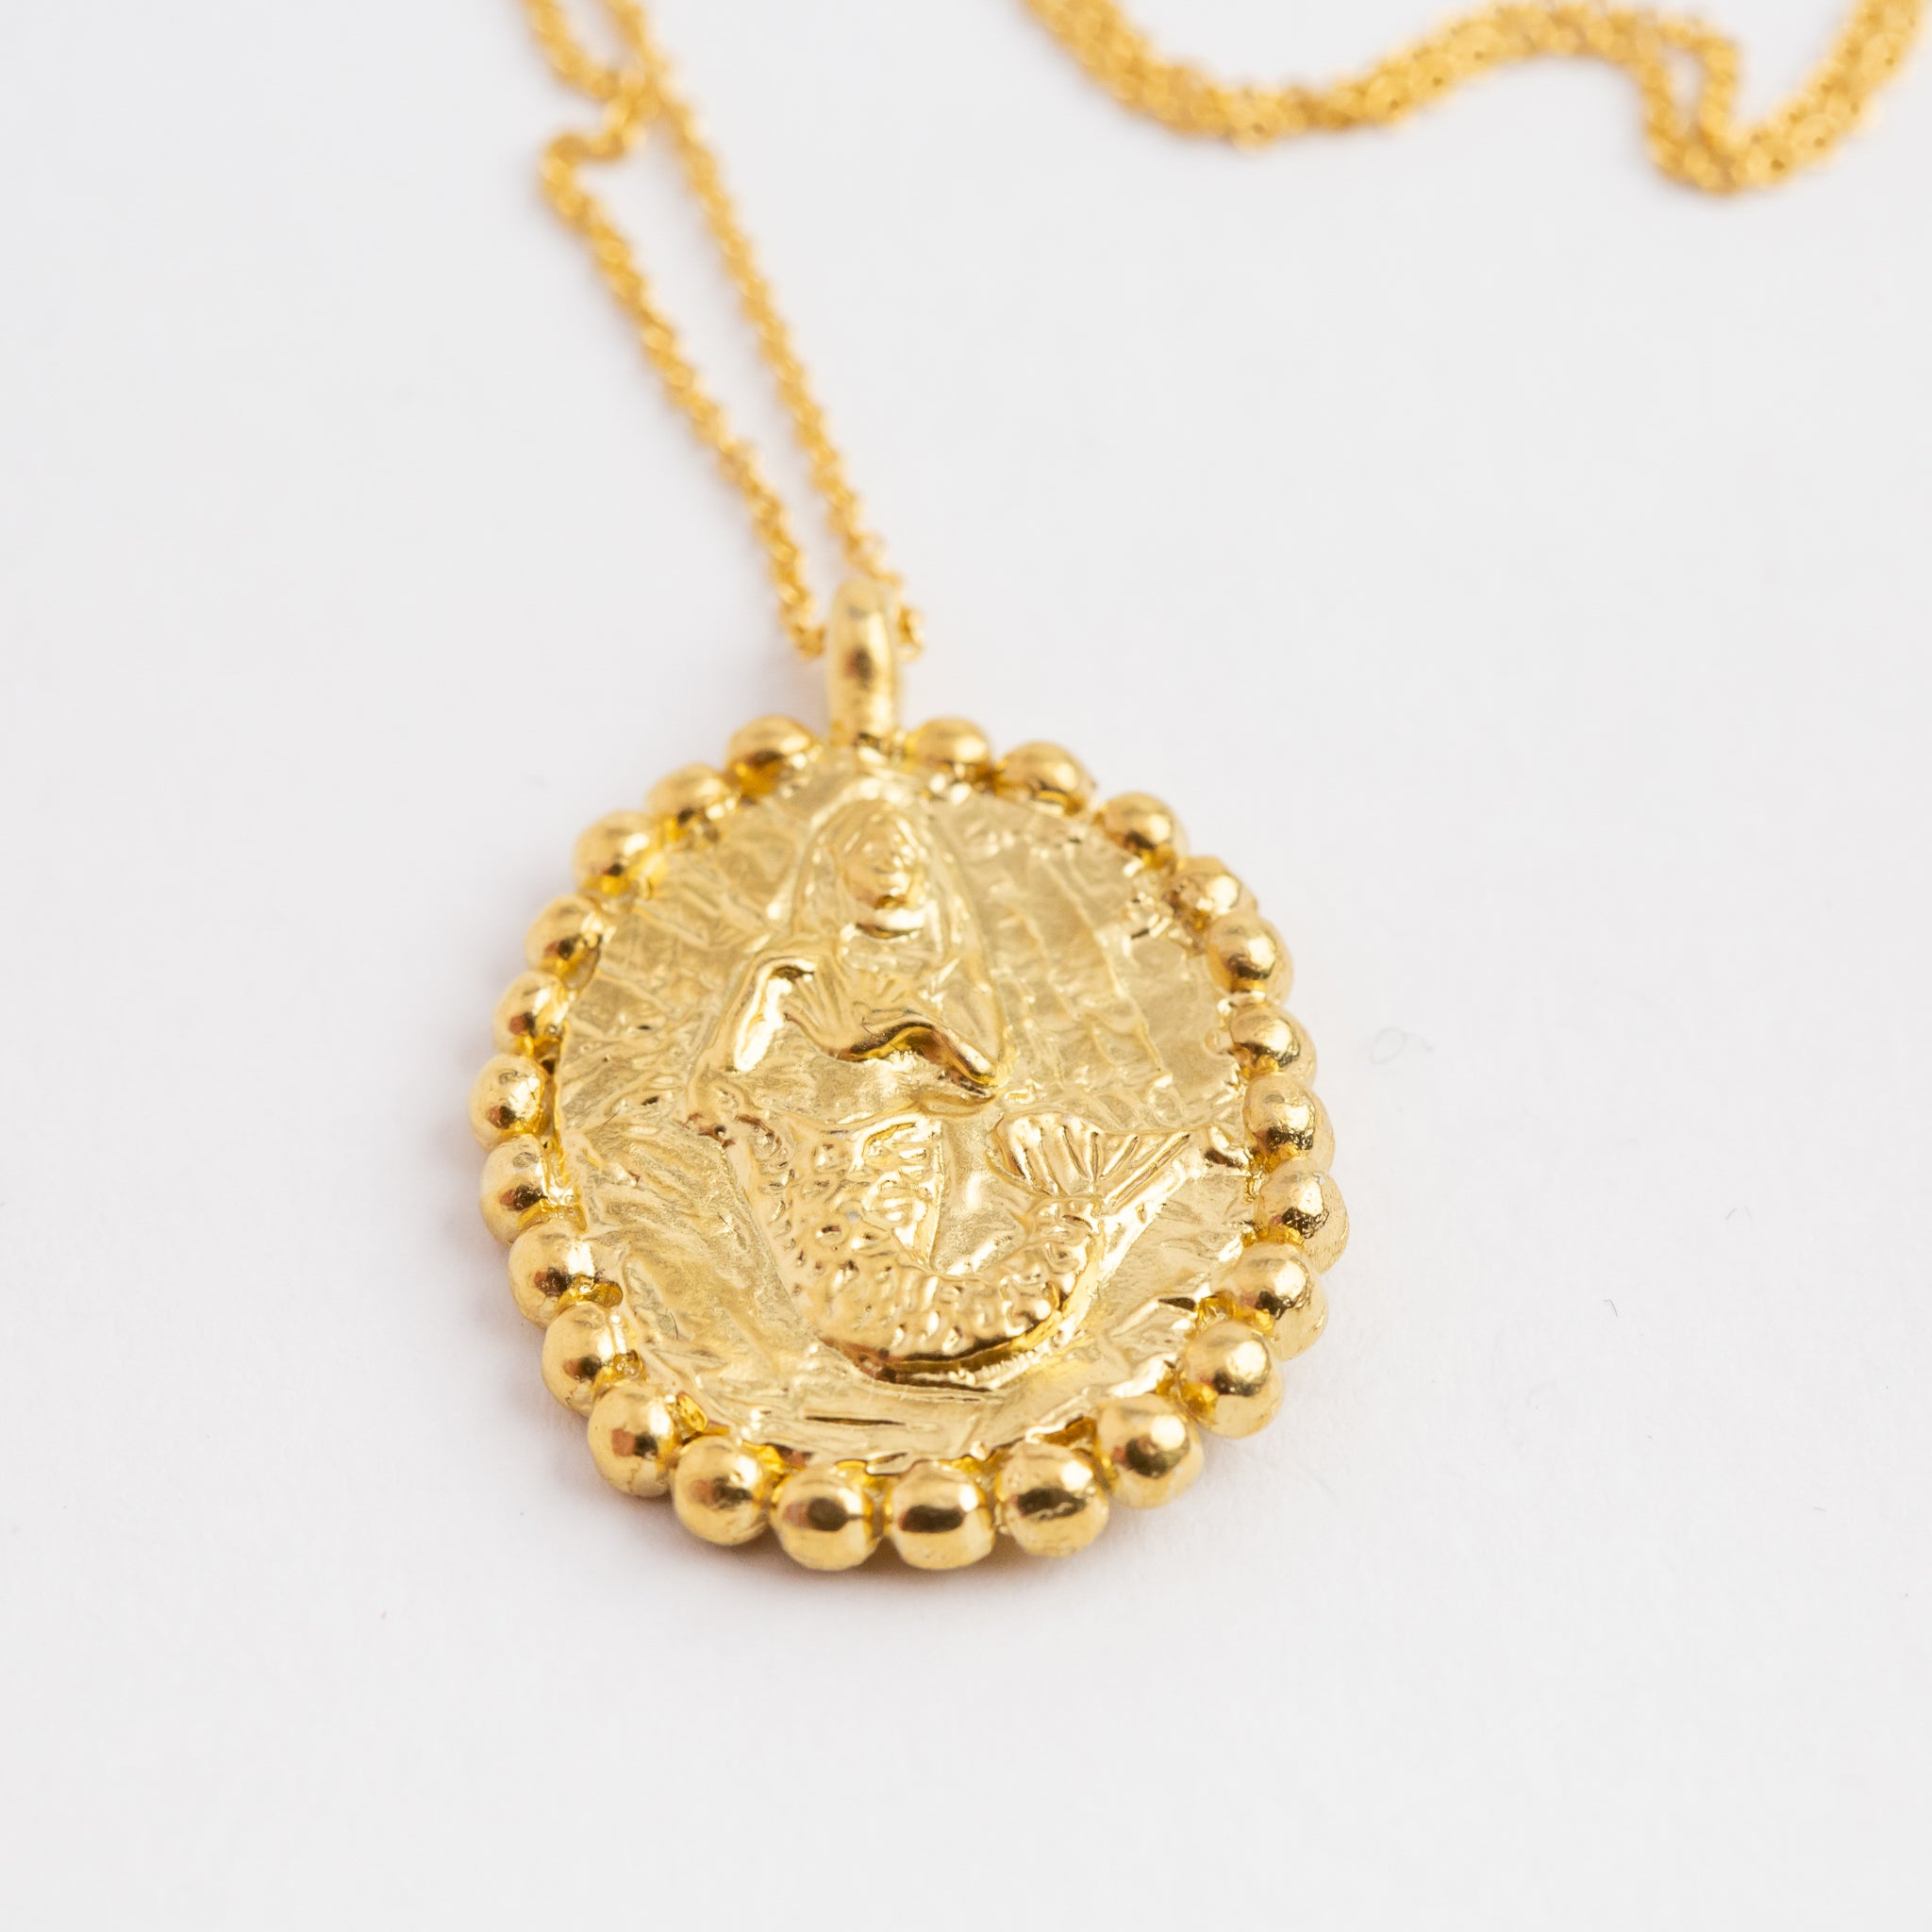 Gold Plate mermaid pendant on gold plate chain, custom bespoke handmade.